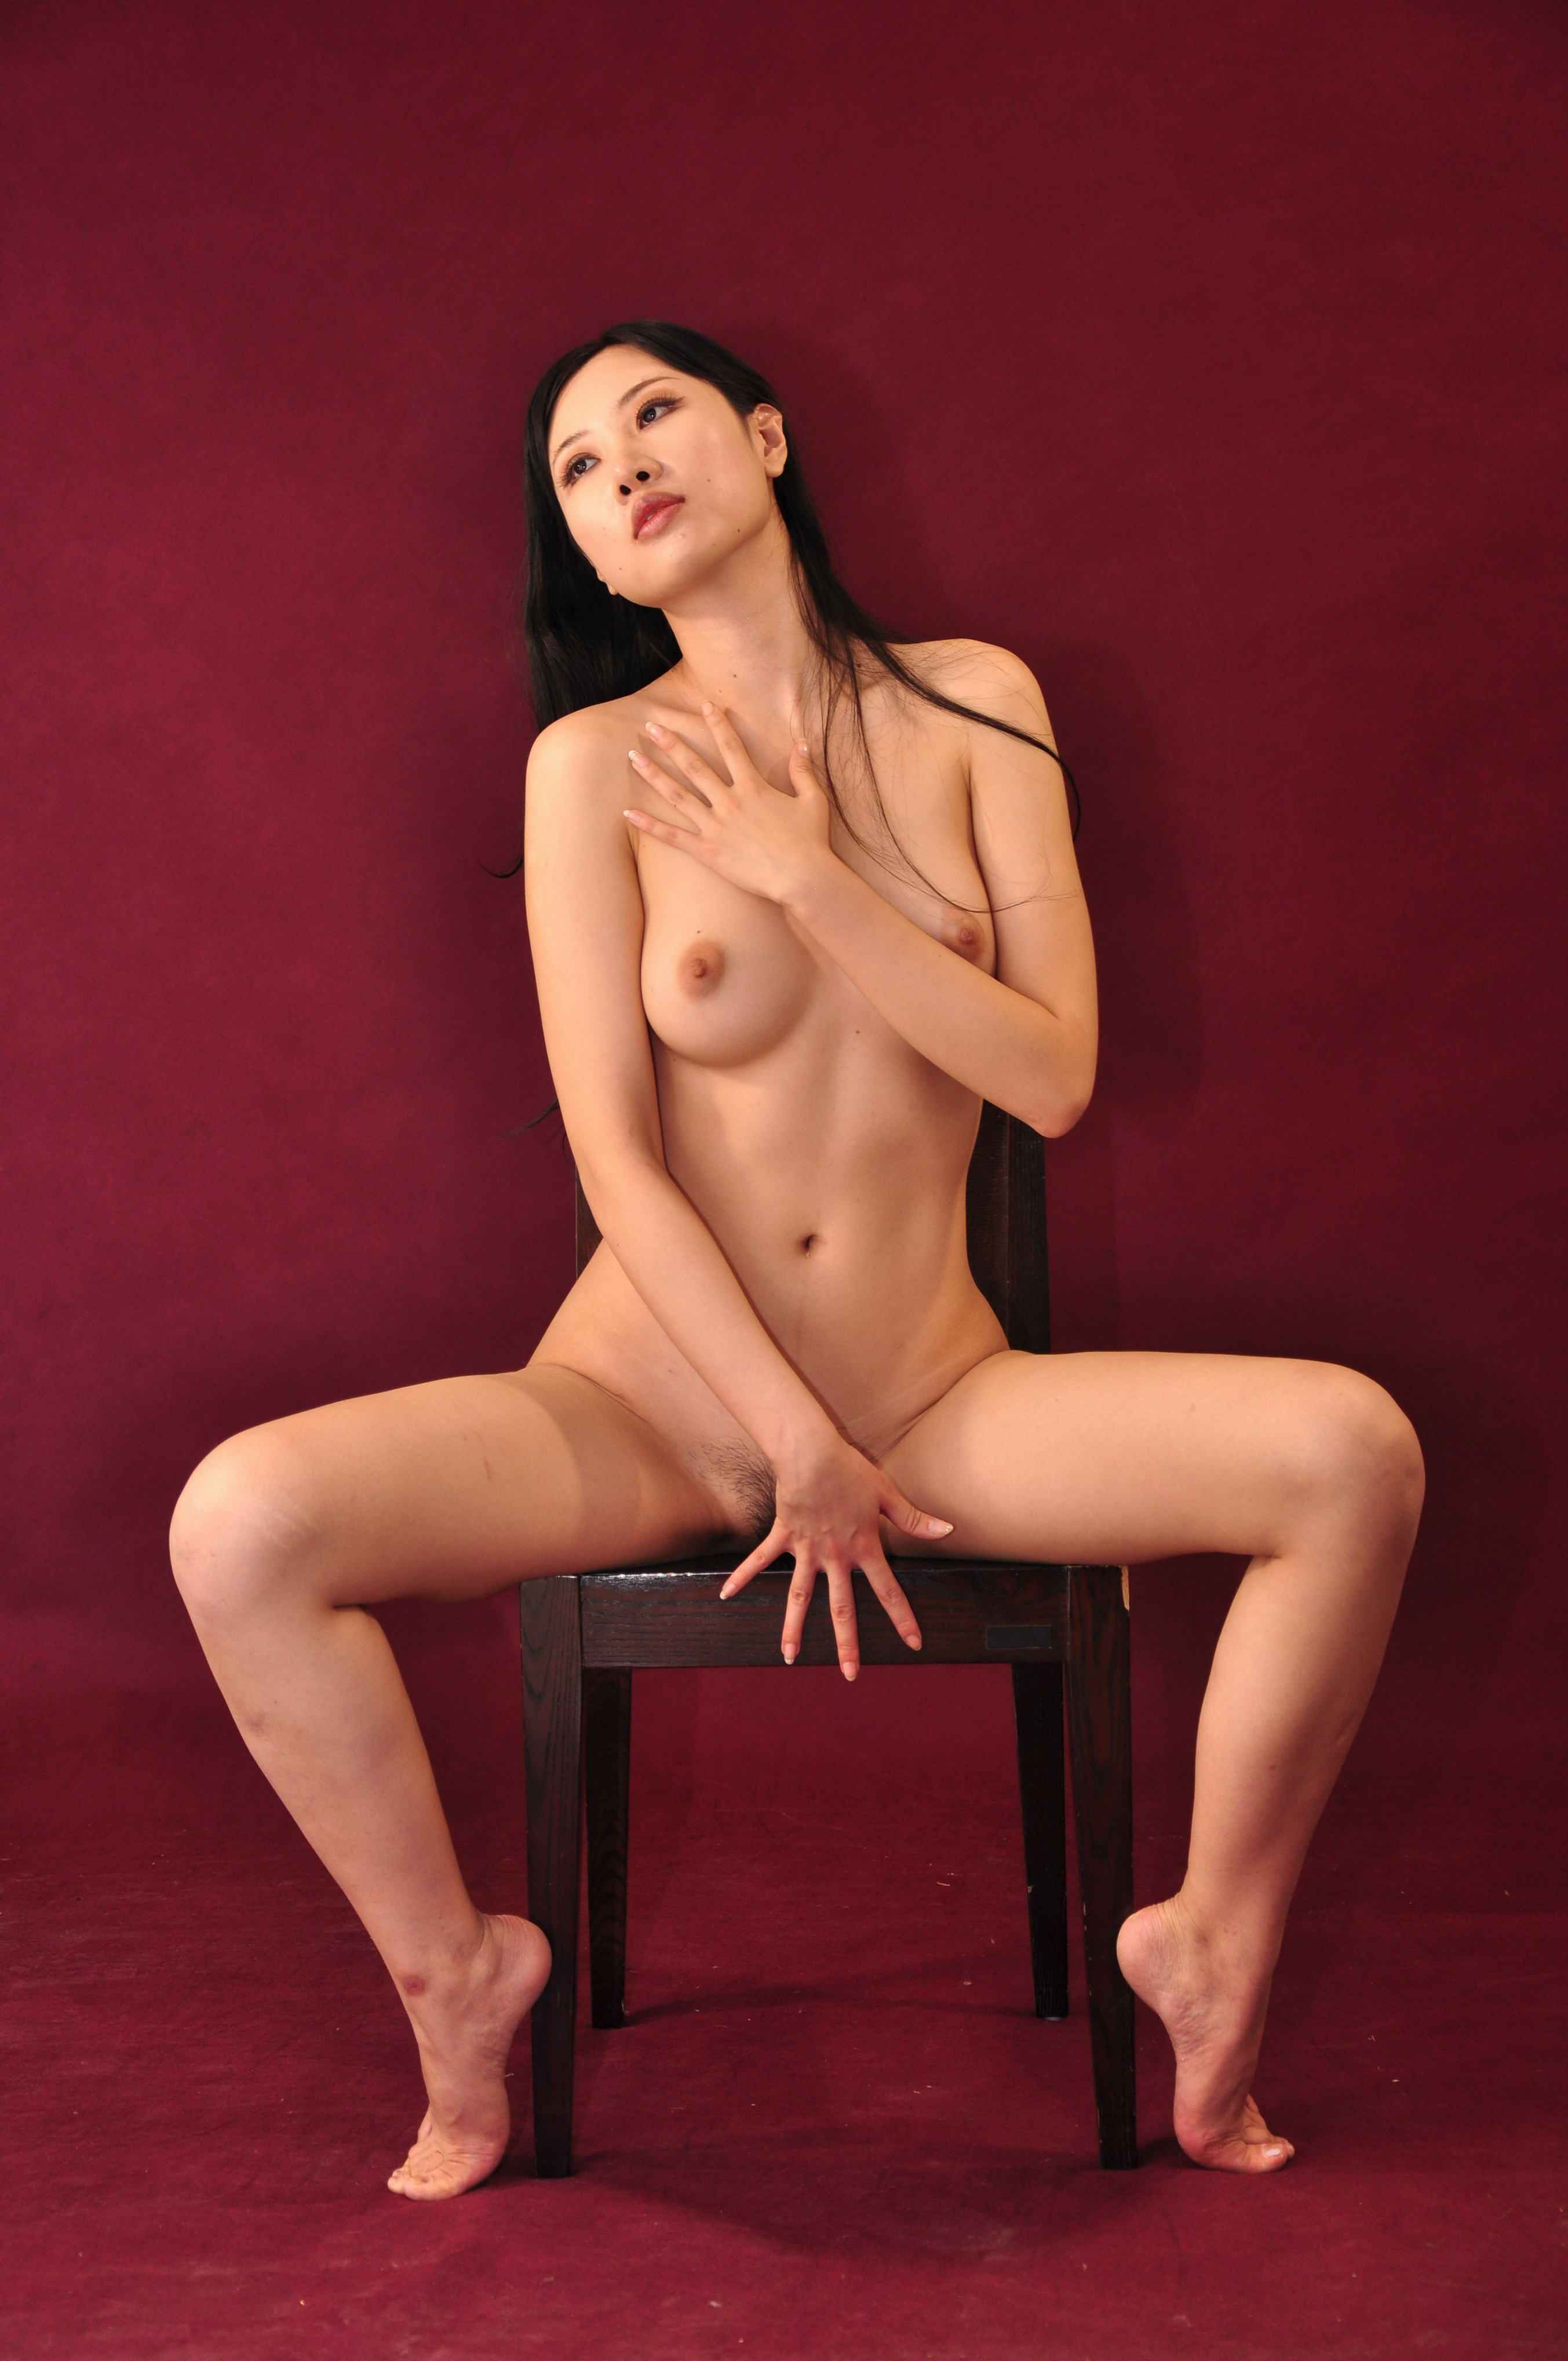 art nudes photography